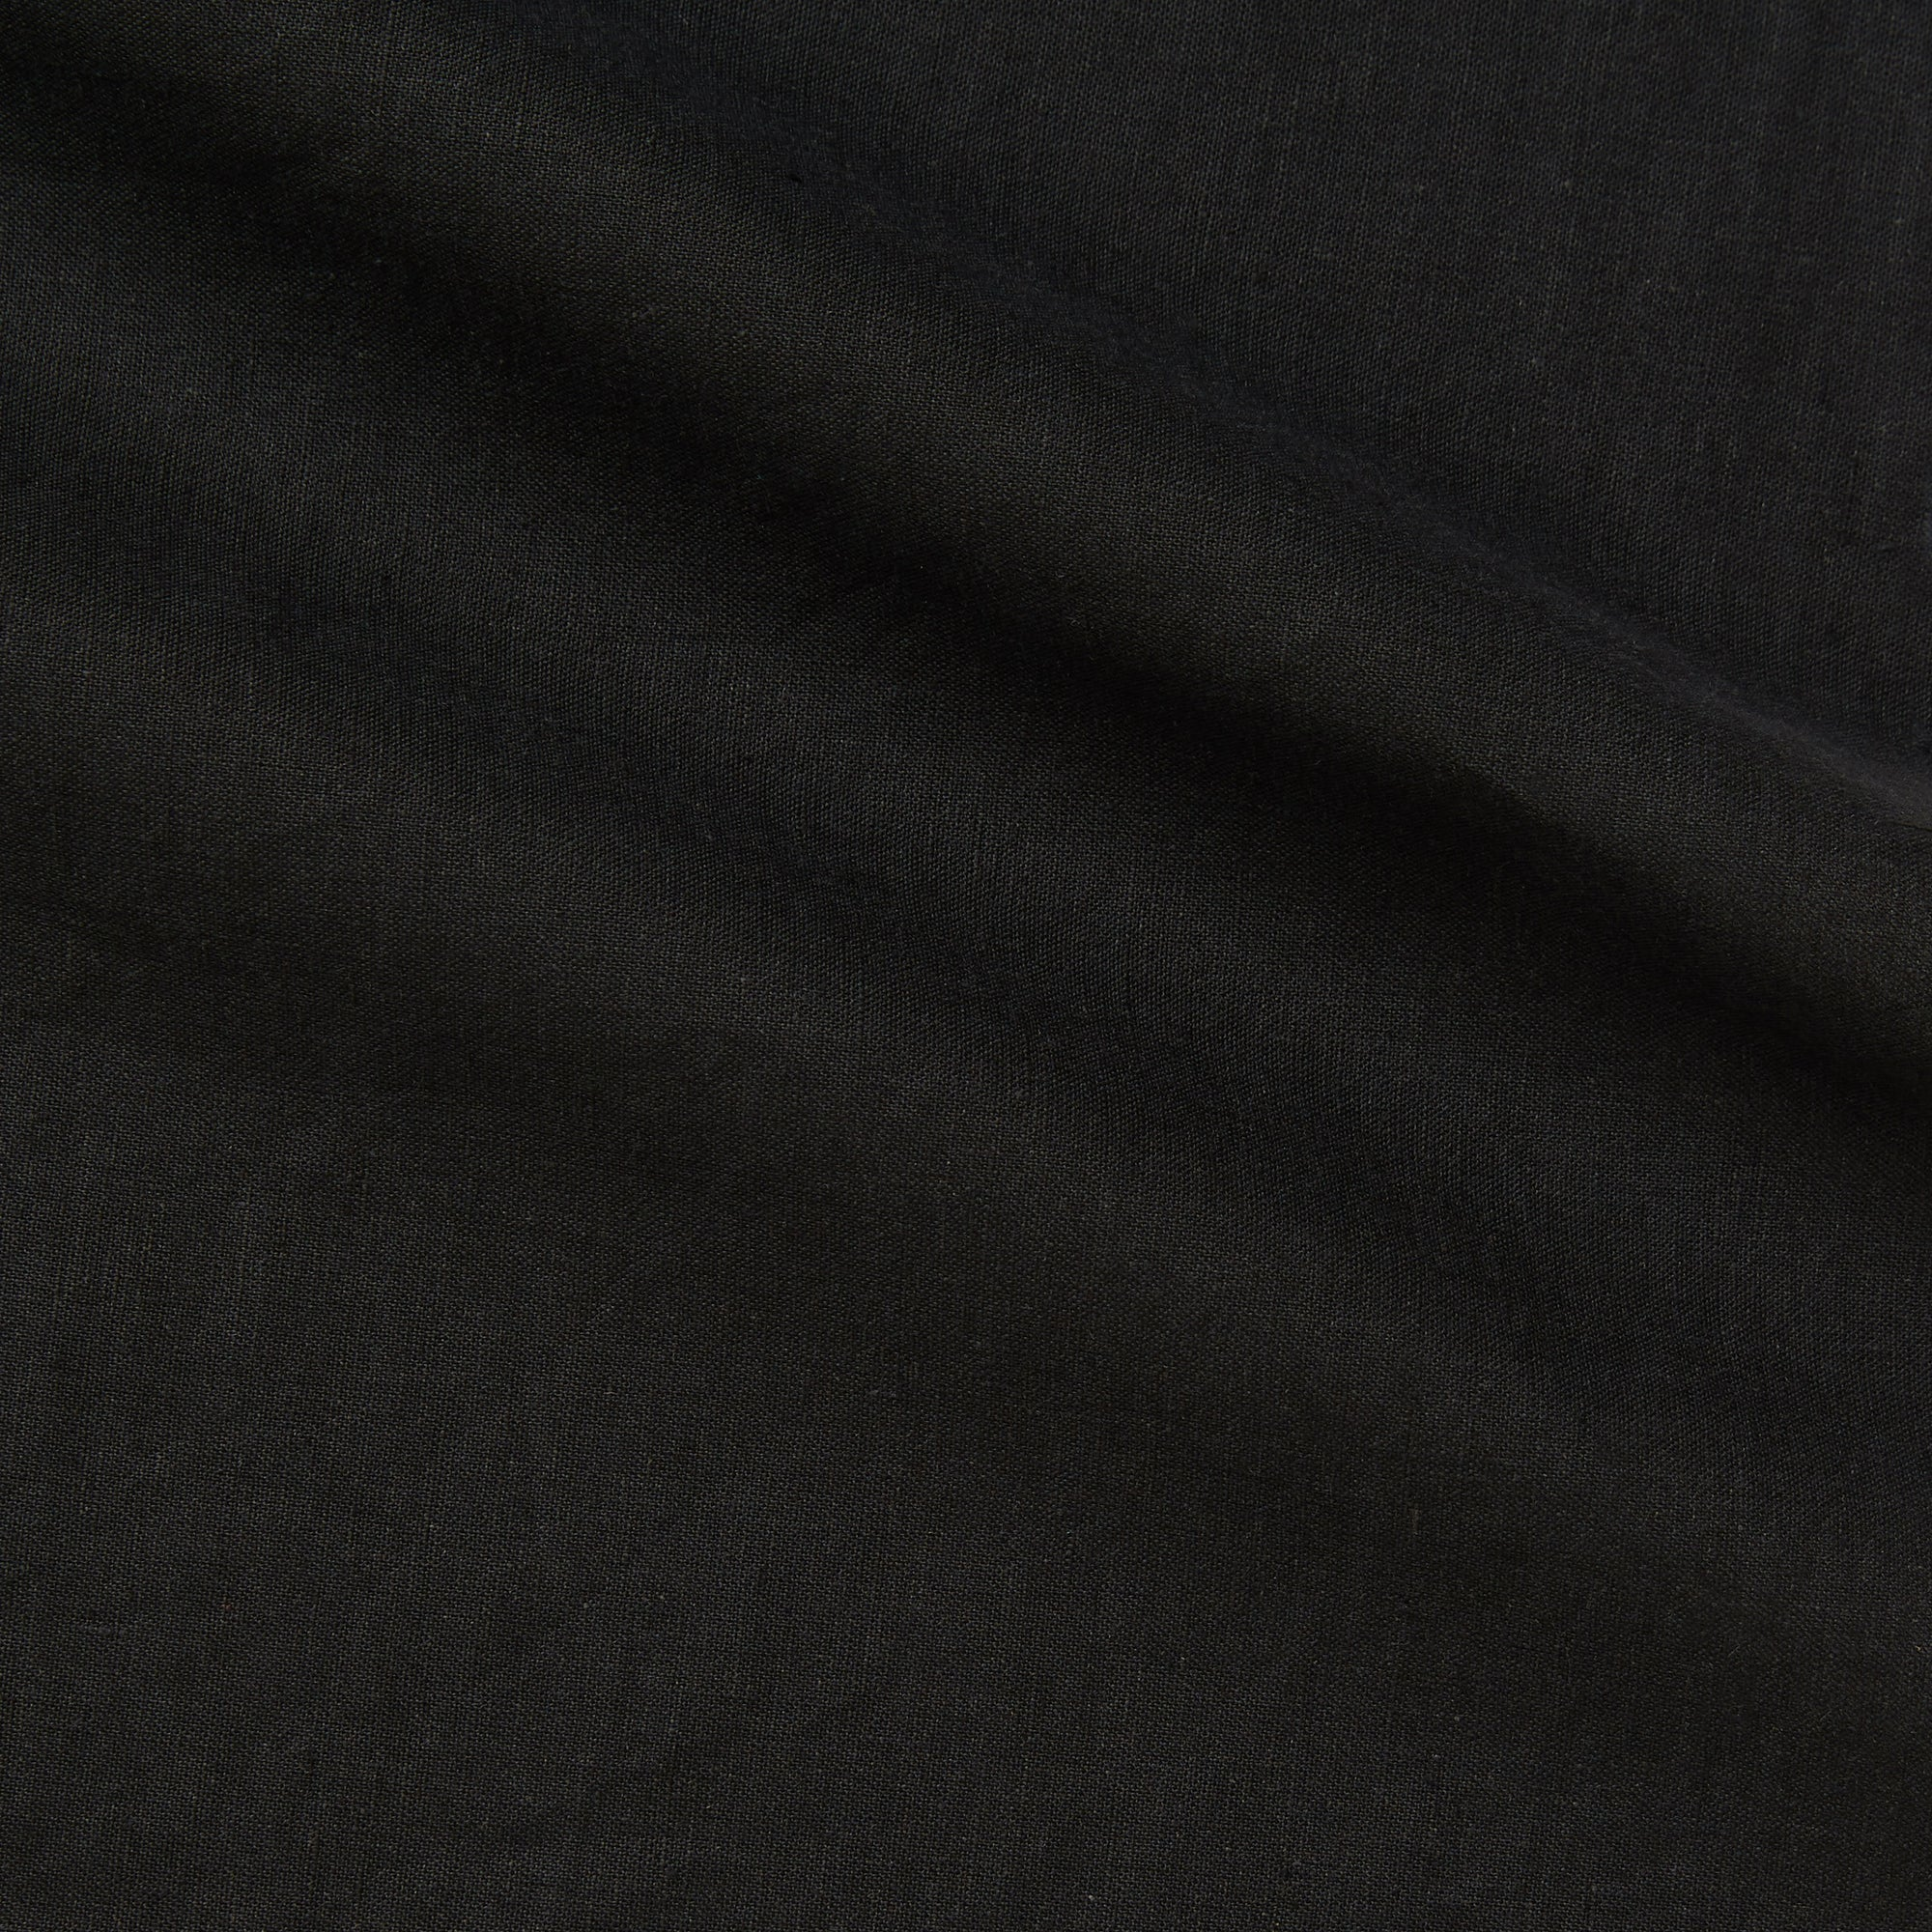 expo black linen cotton blend